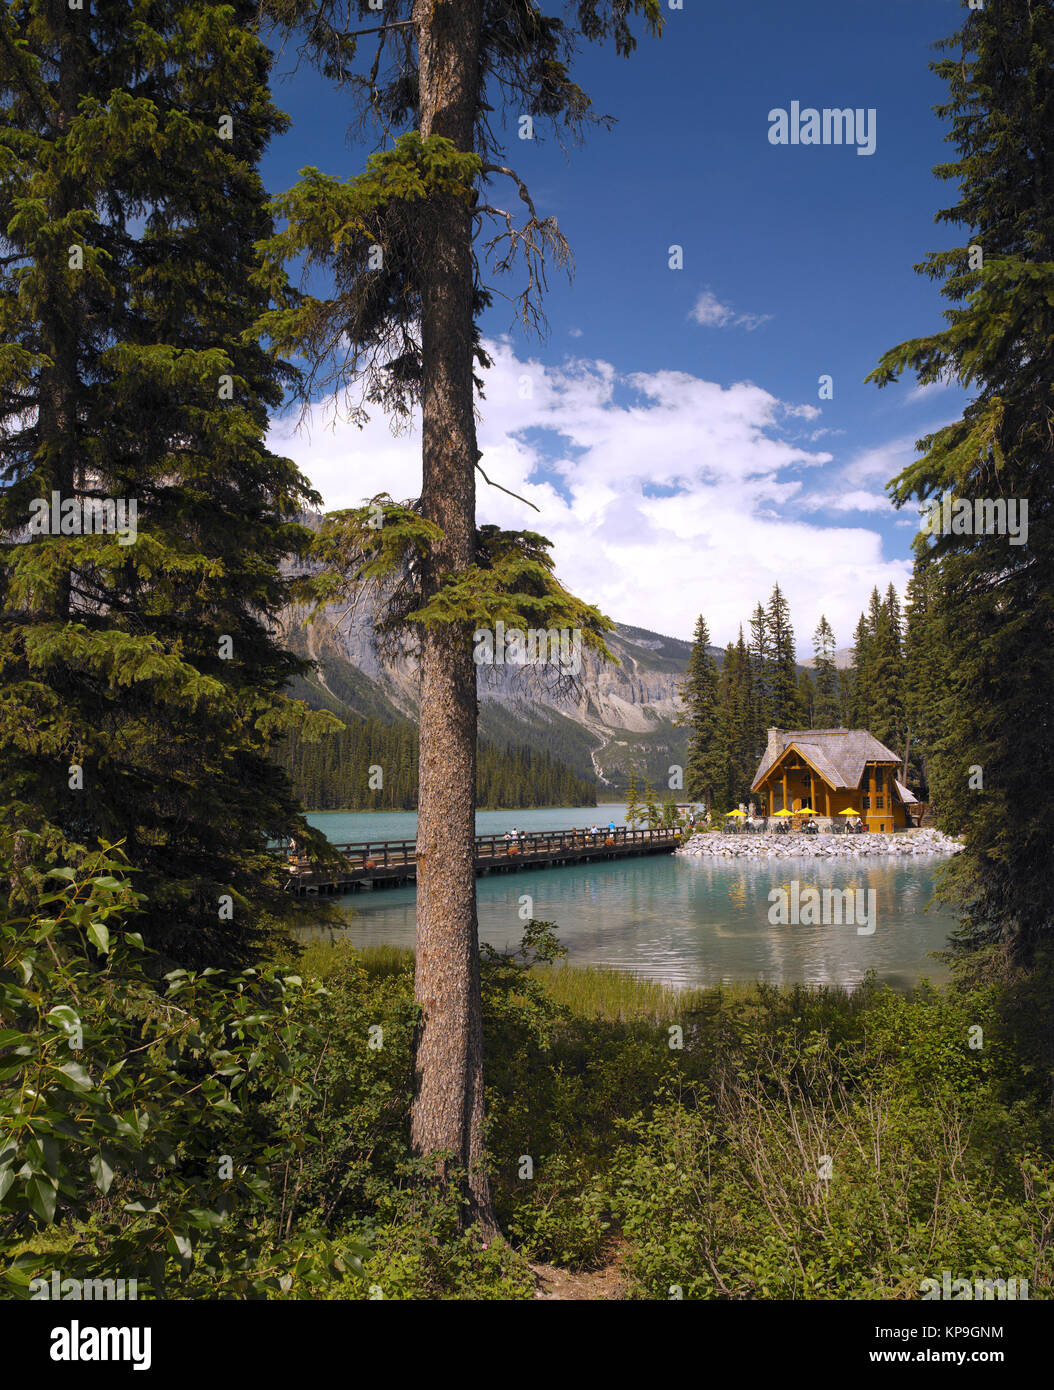 Emerald Lake in Yoho National Park in British Columbia, western Canada. - Stock Image